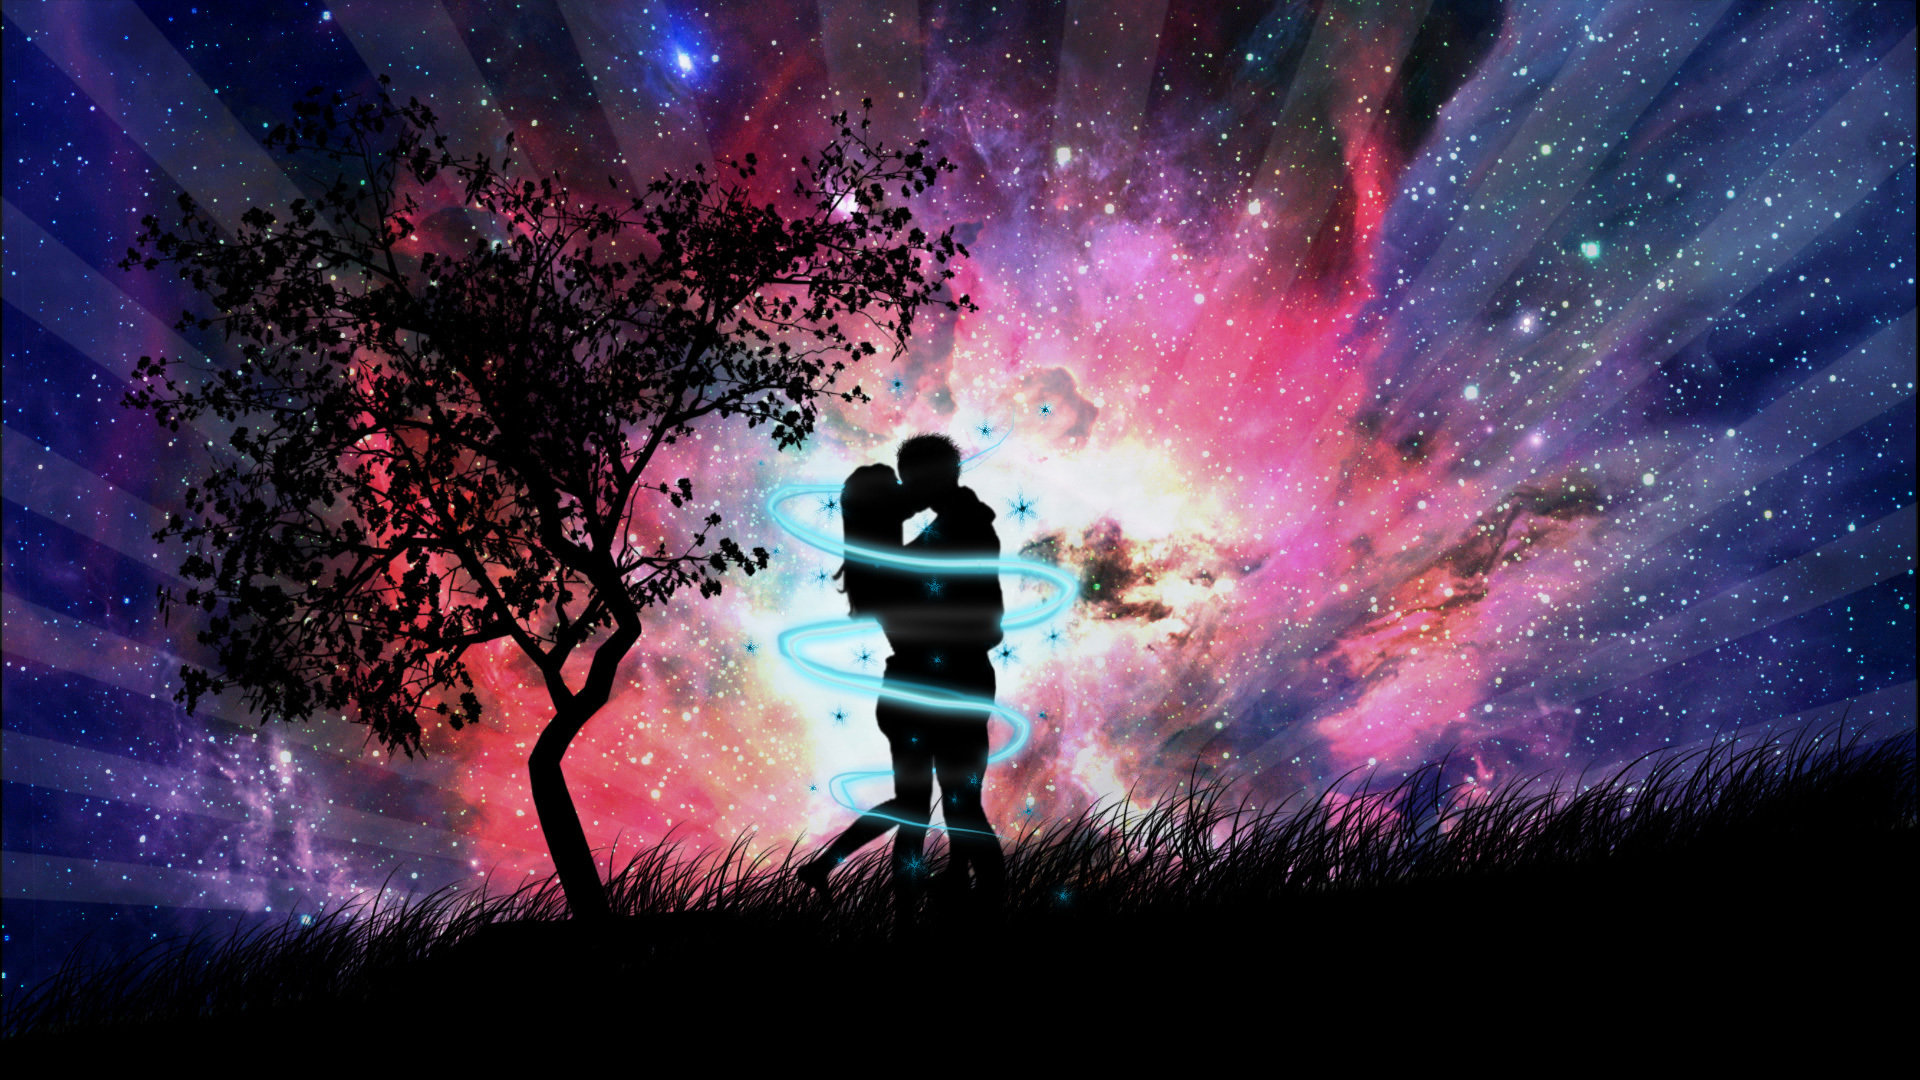 Best Romantic Wallpaper Id 306301 For High Resolution Hd 1080p Computer